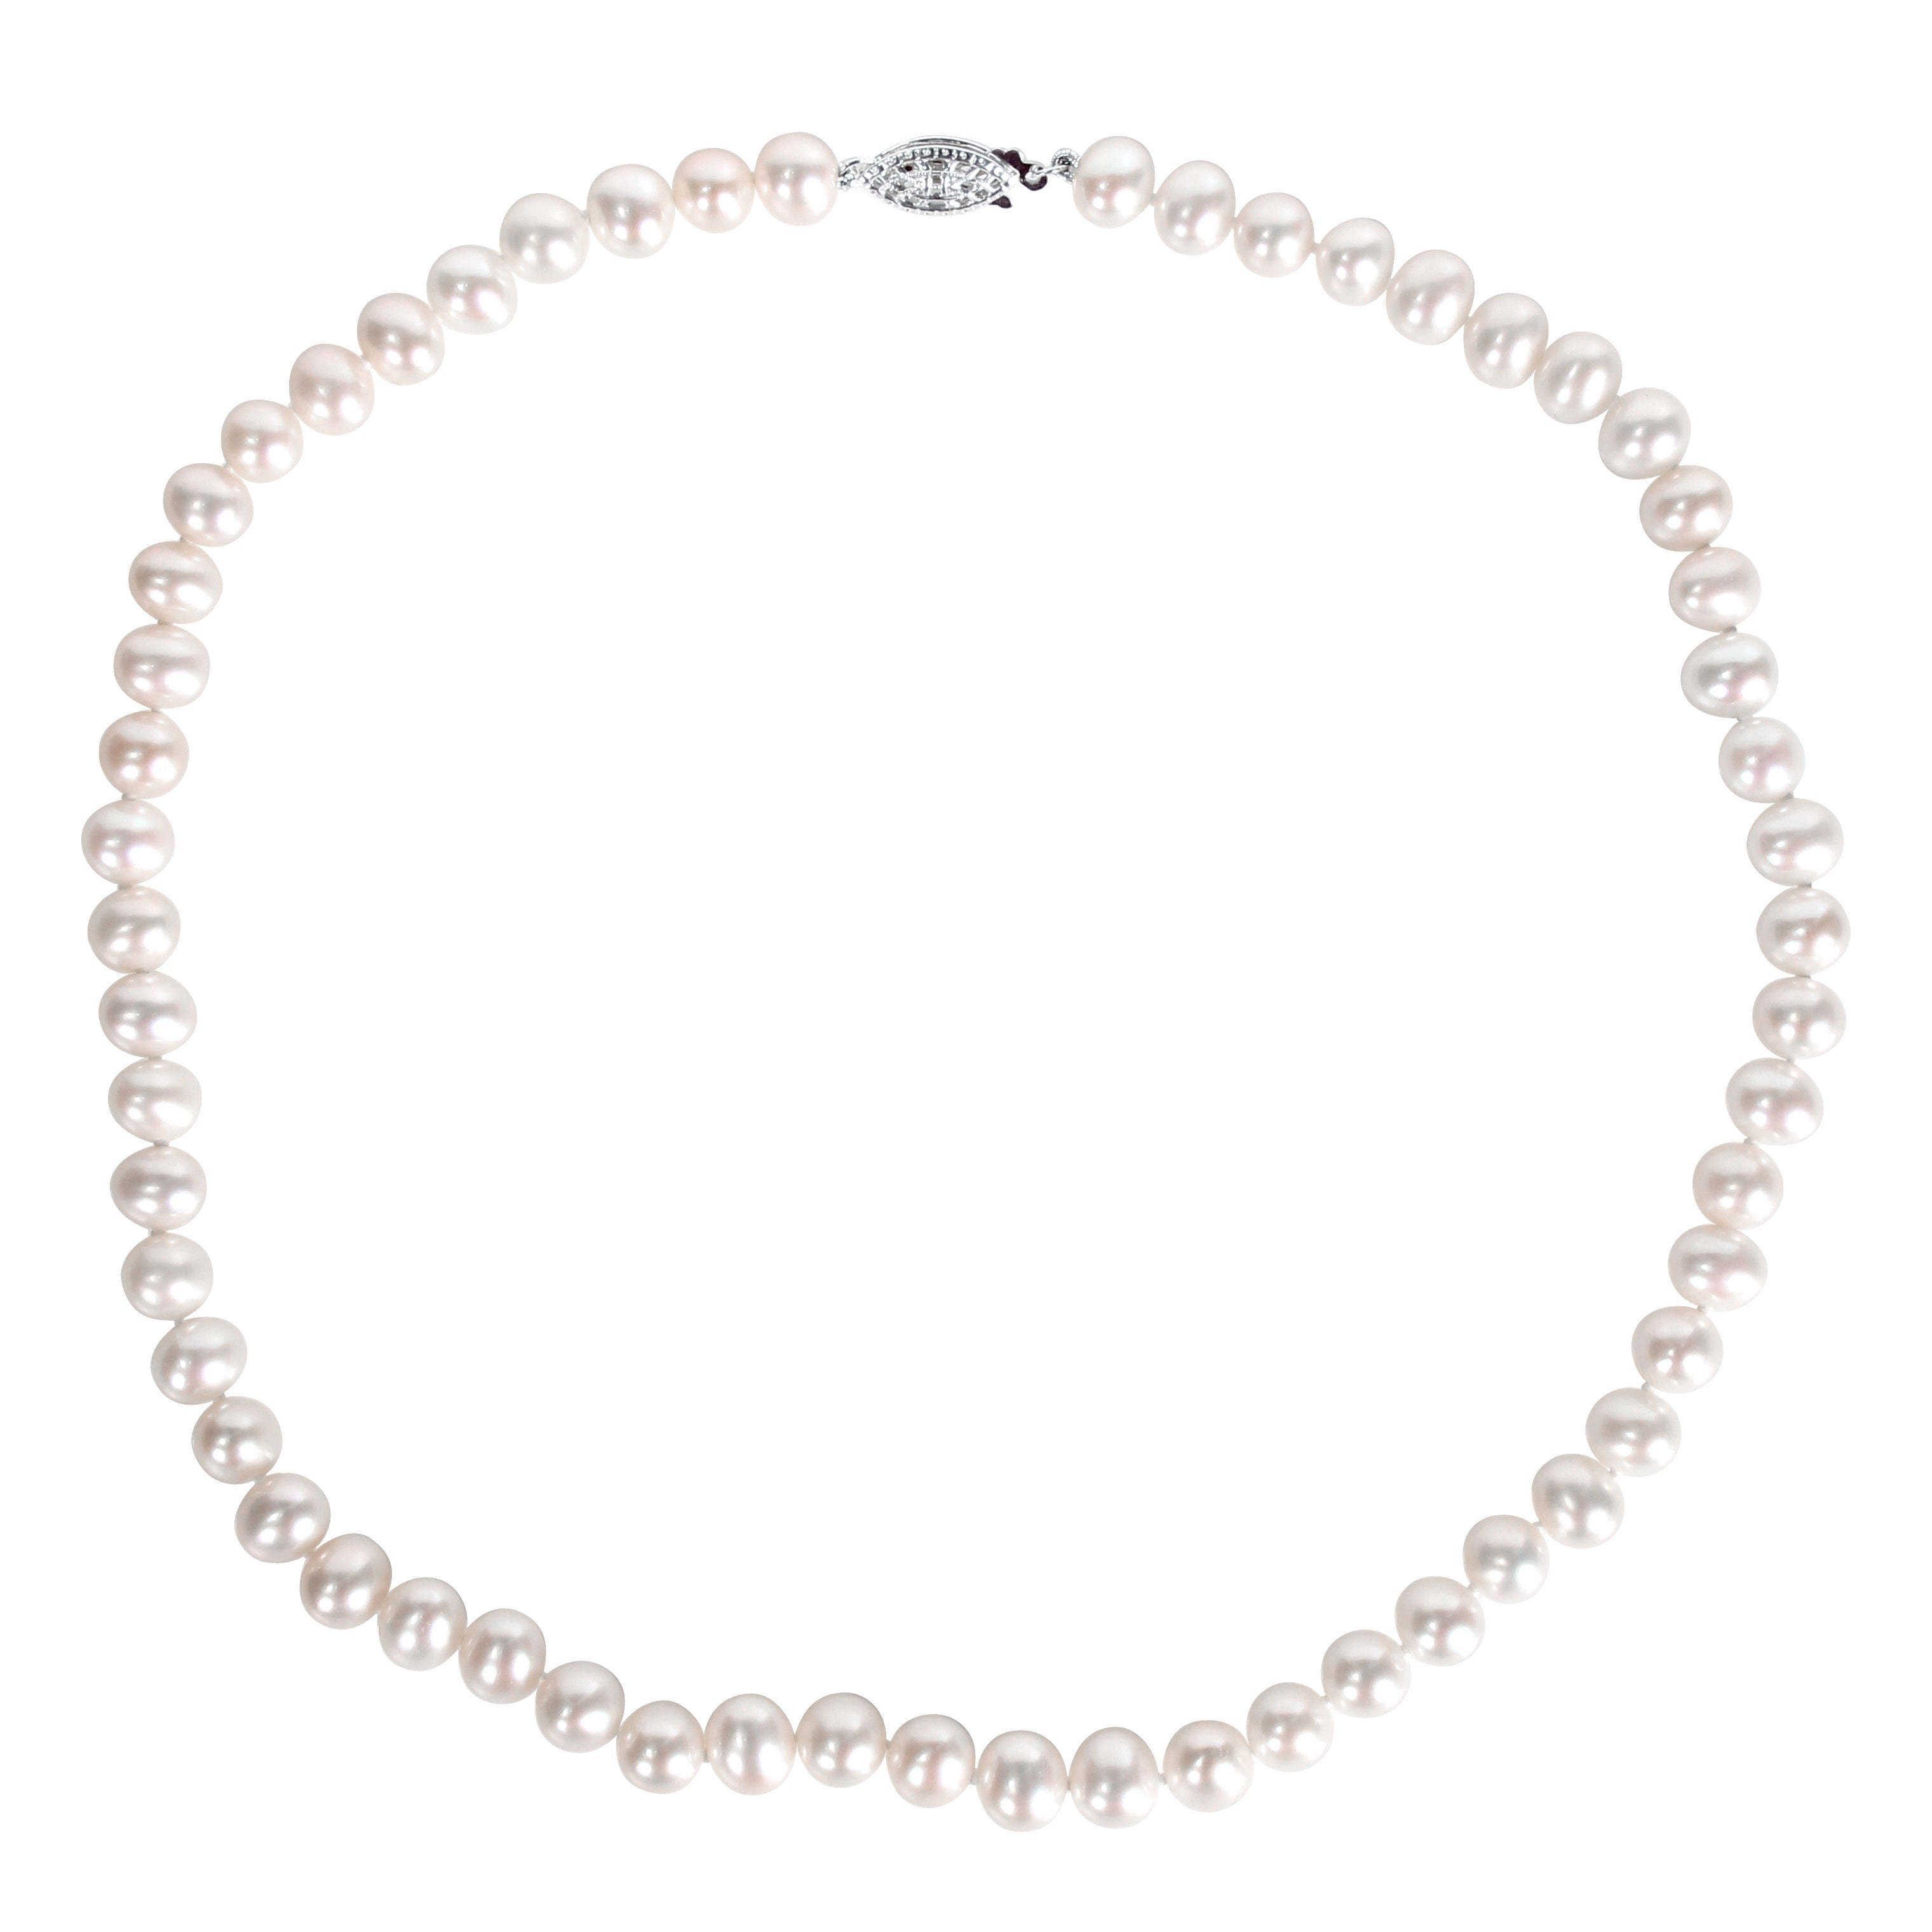 6d9db451f09d1e Shop Miadora White Cultured Freshwater Pearl Necklace (16-18 inch) - On  Sale - Free Shipping On Orders Over $45 - Overstock - 5659194